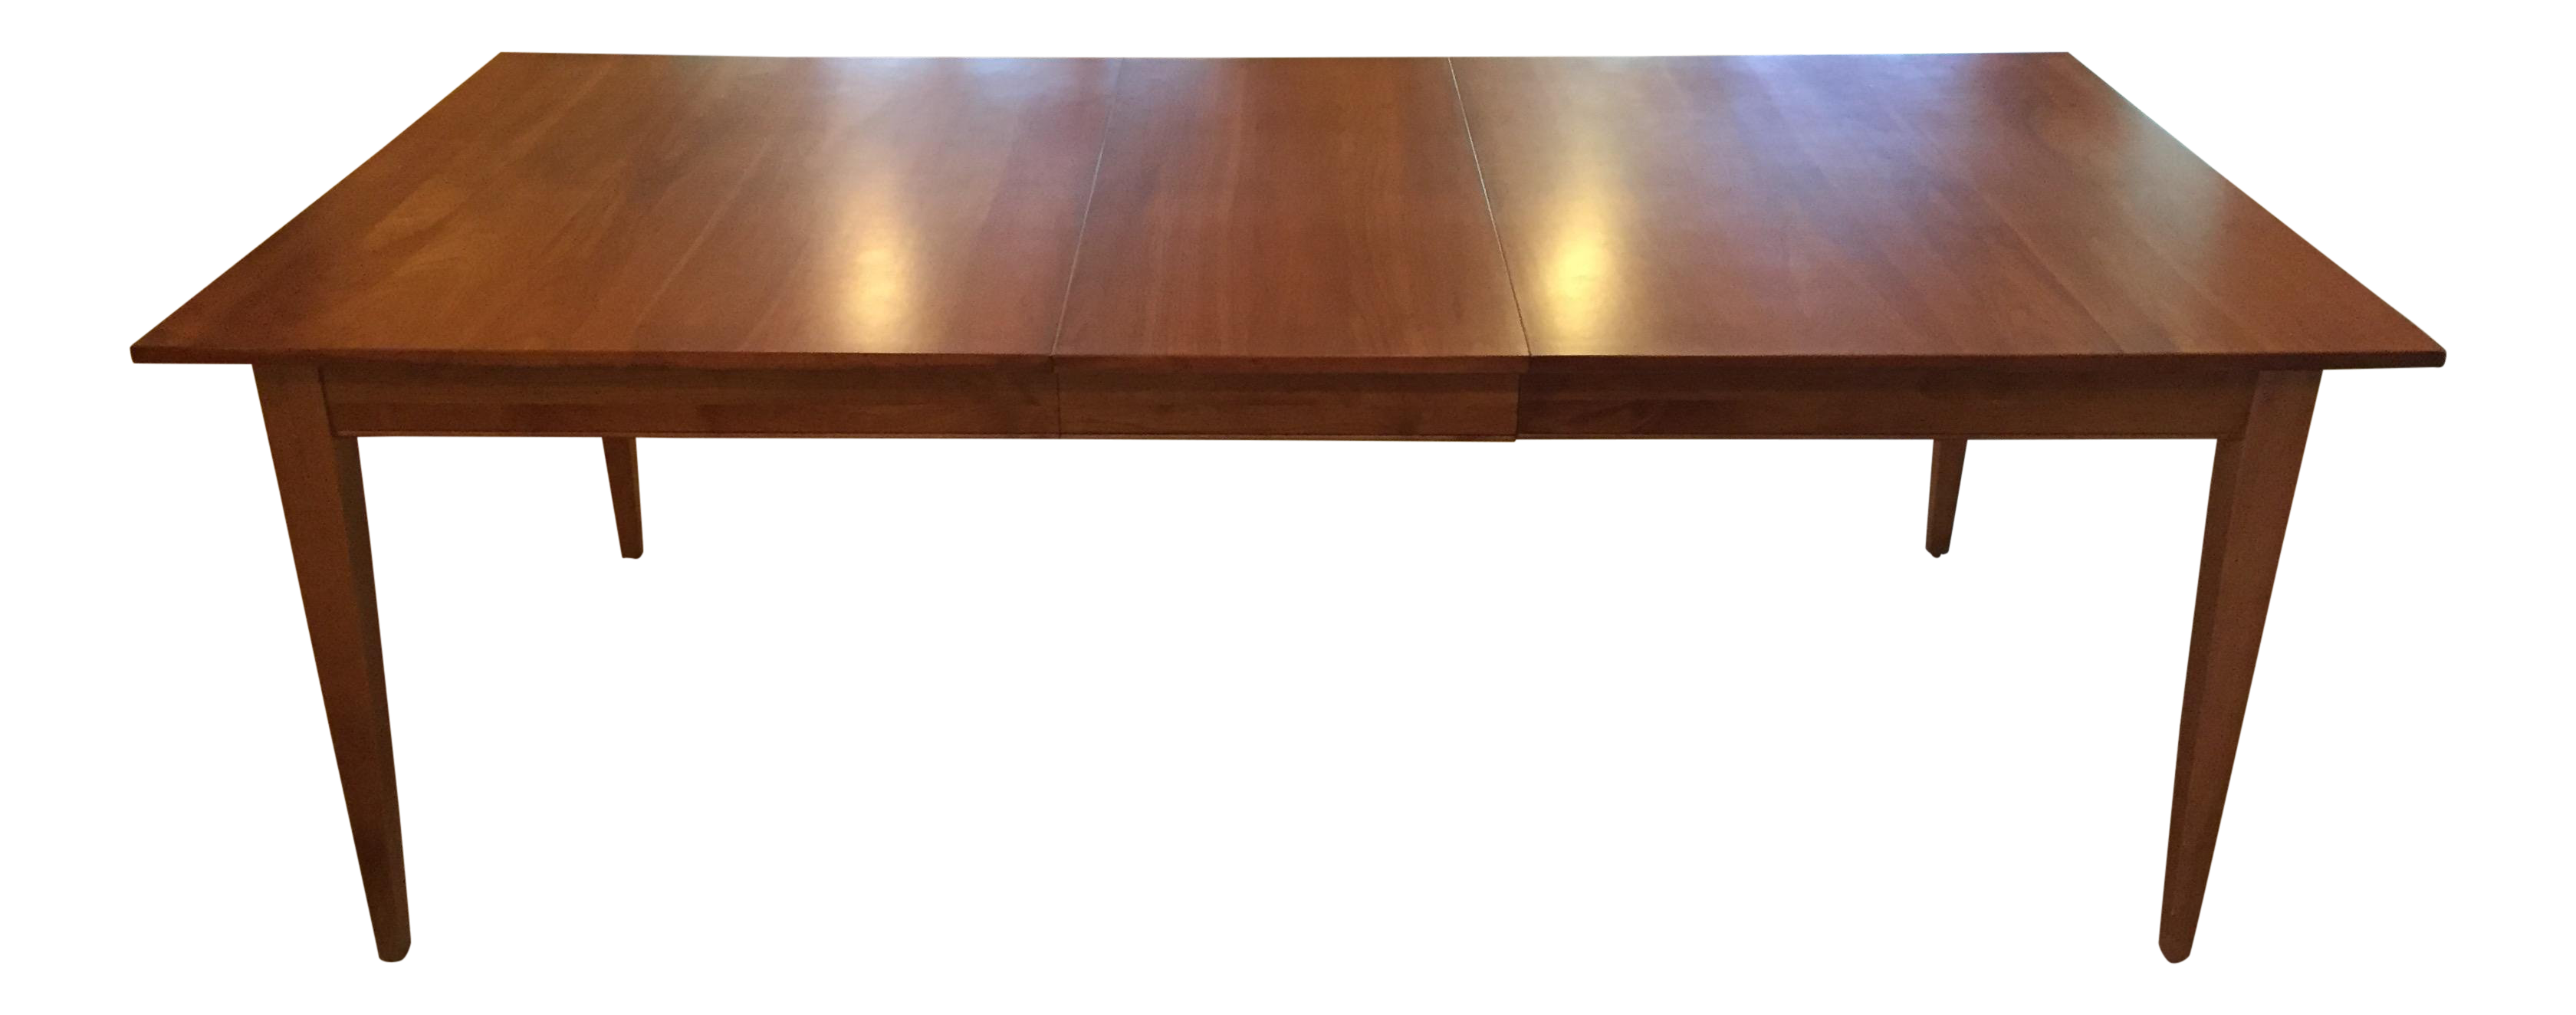 Ethan Allen New Impressions Dining Table With 2 Leaves Chairish